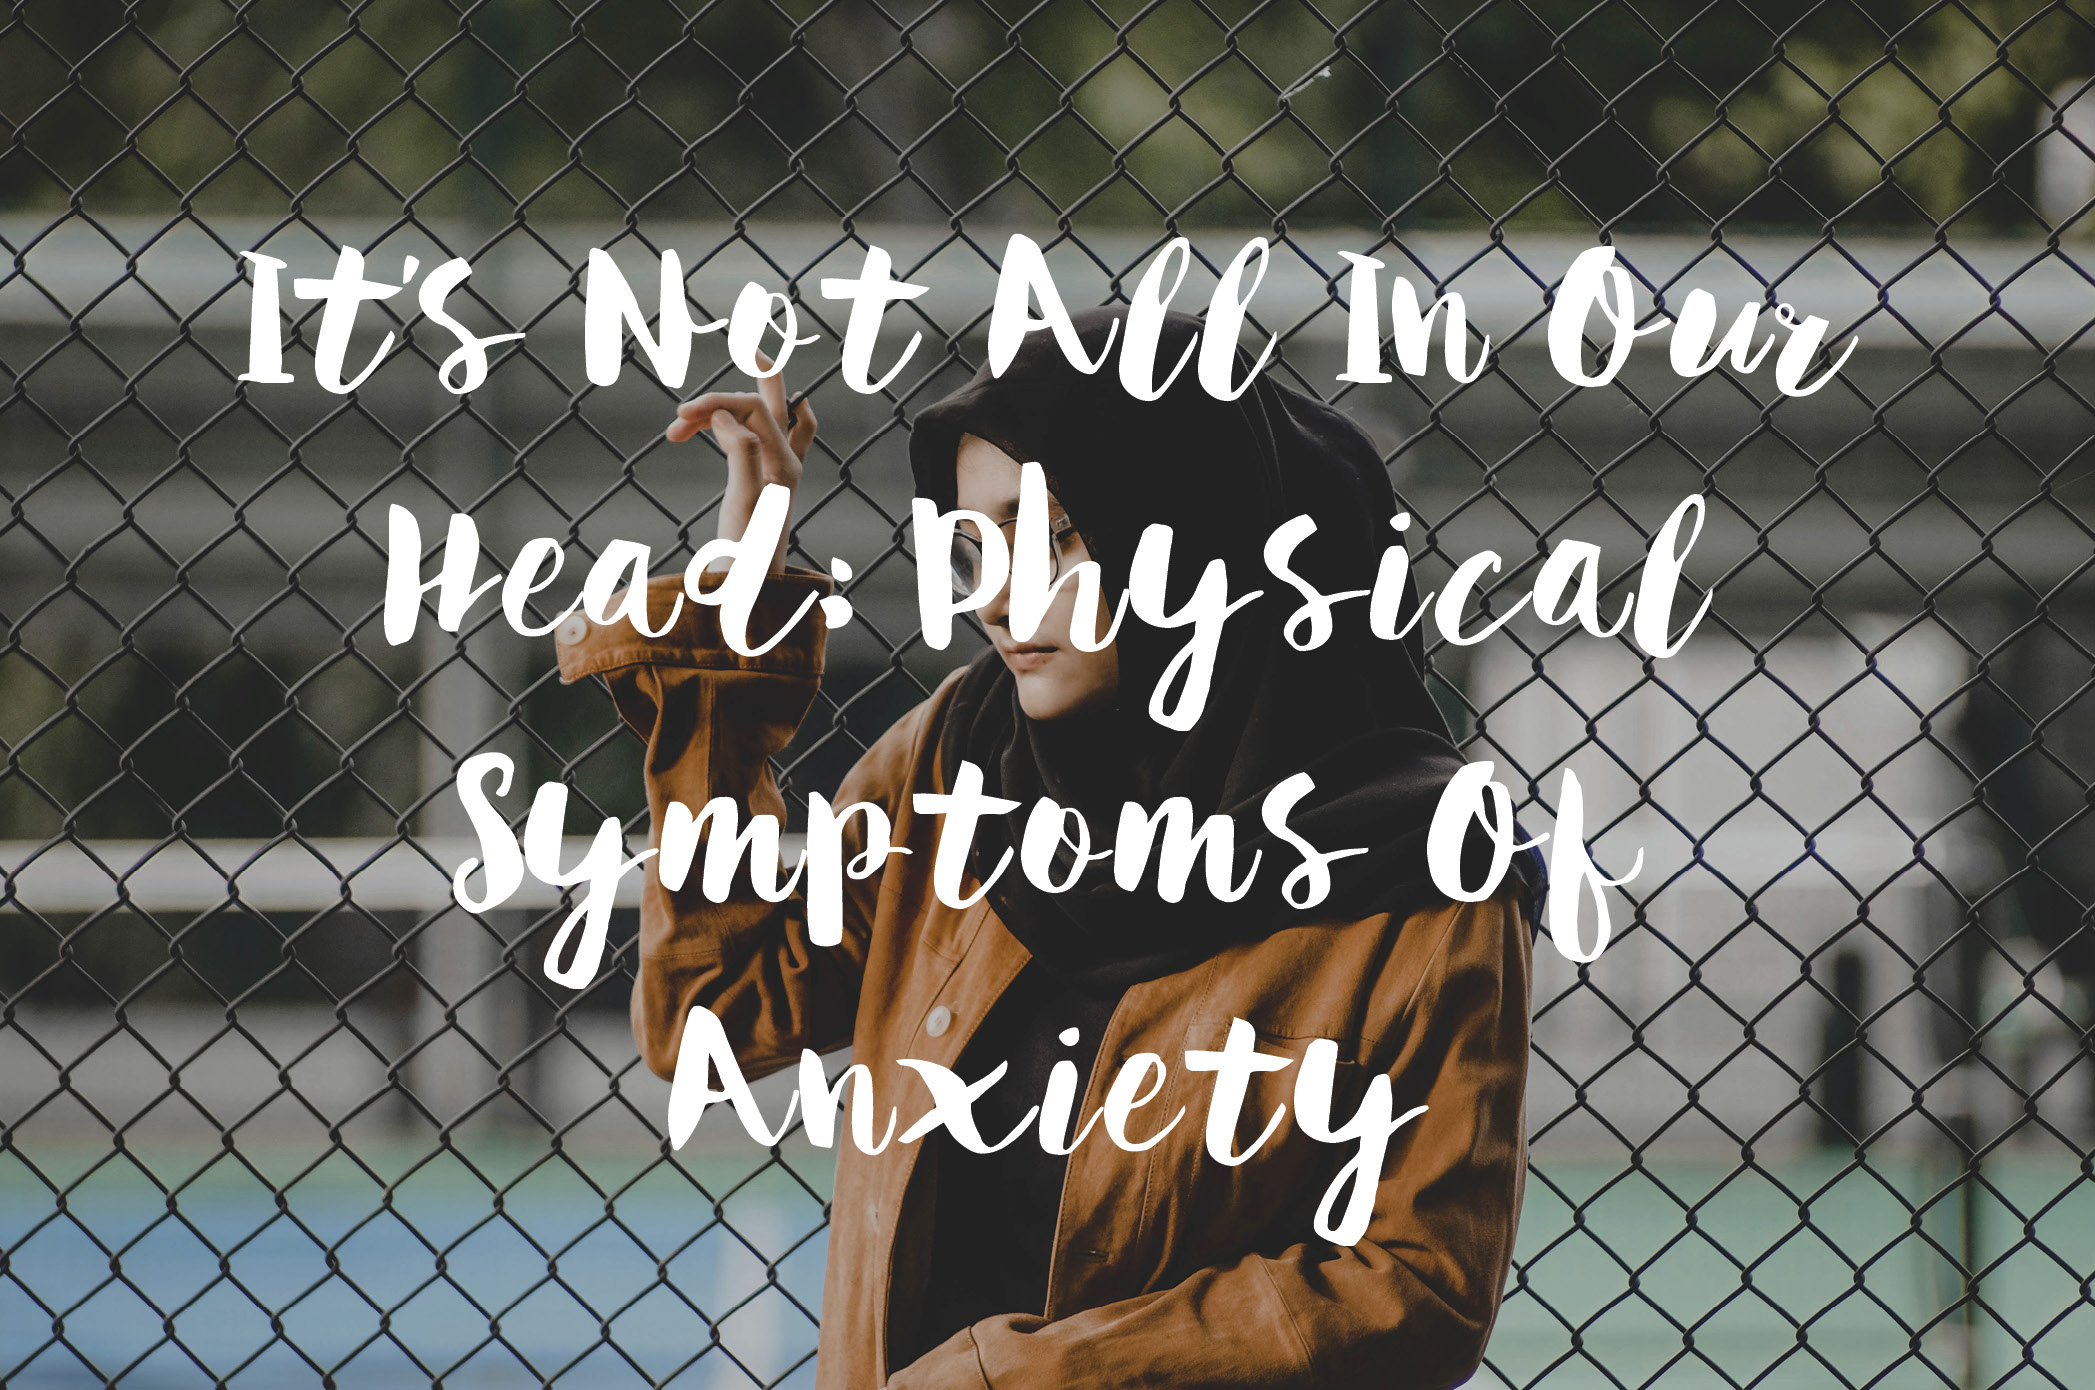 It's Not All In Our Head: Physical Symptoms Of Anxiety